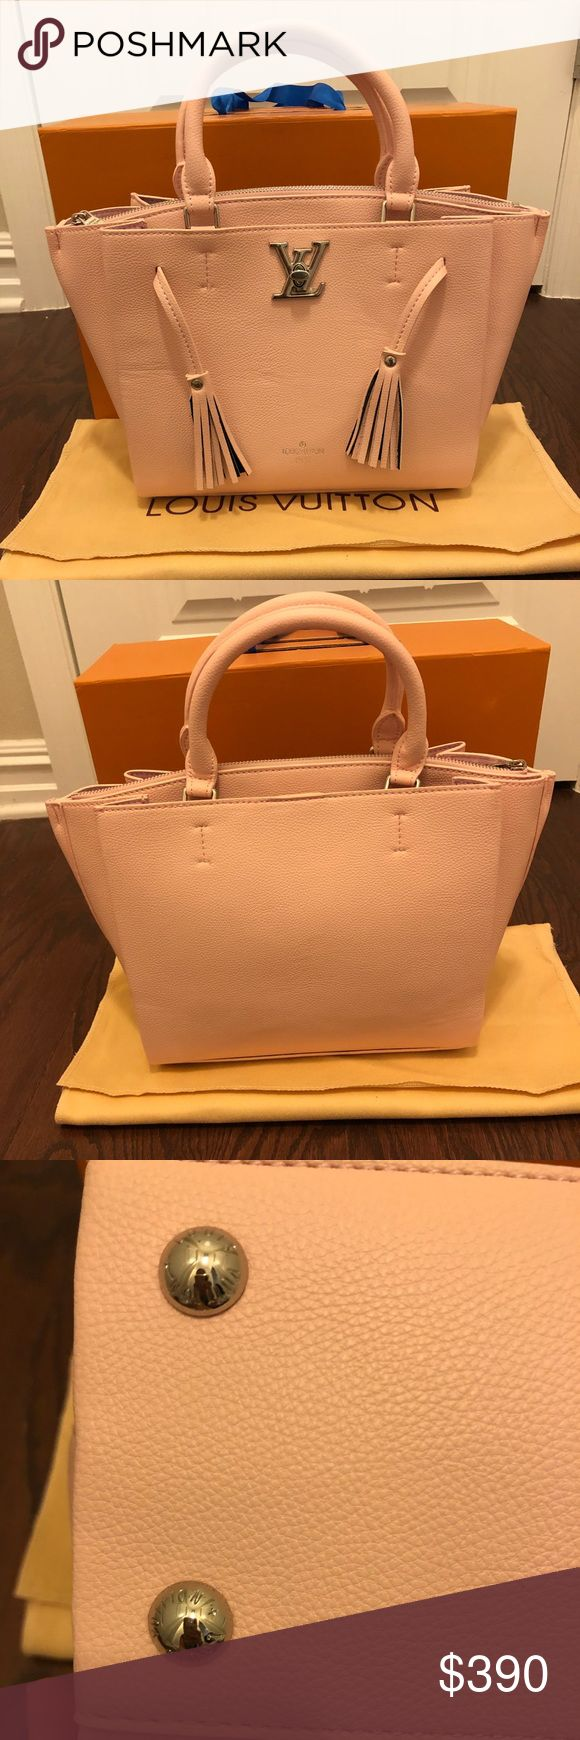 New bag New bag. Pale pink, lightweight. Very good quality. Comes with dust bag and shoulder strap. Please pay close attention to the price, authentic ones cost more. Offers welcome, no trades. Louis Vuitton Bags Satchels